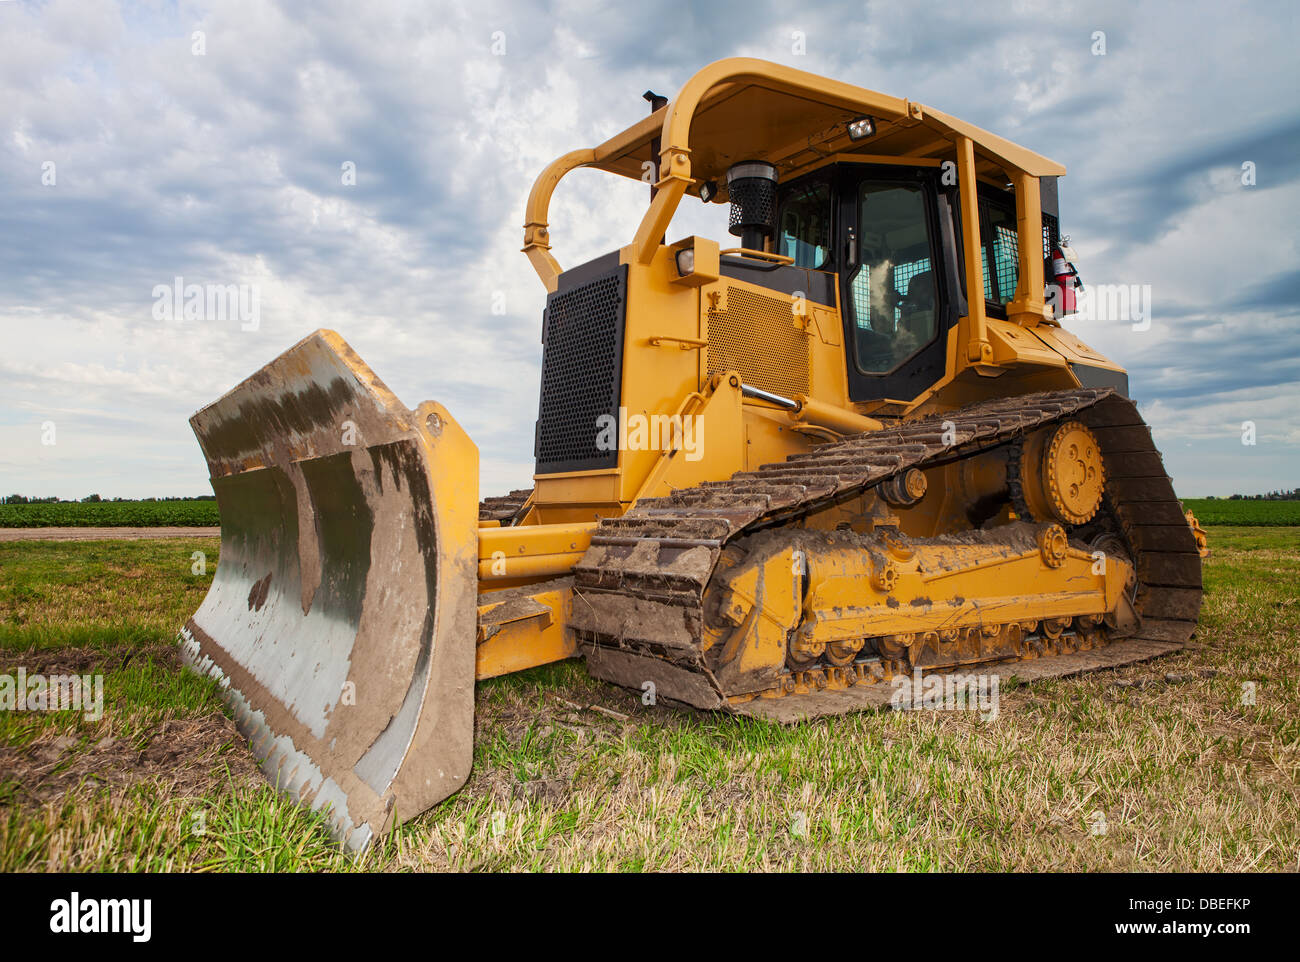 A large yellow bulldozer on a construction site near a farmers field - Stock Image